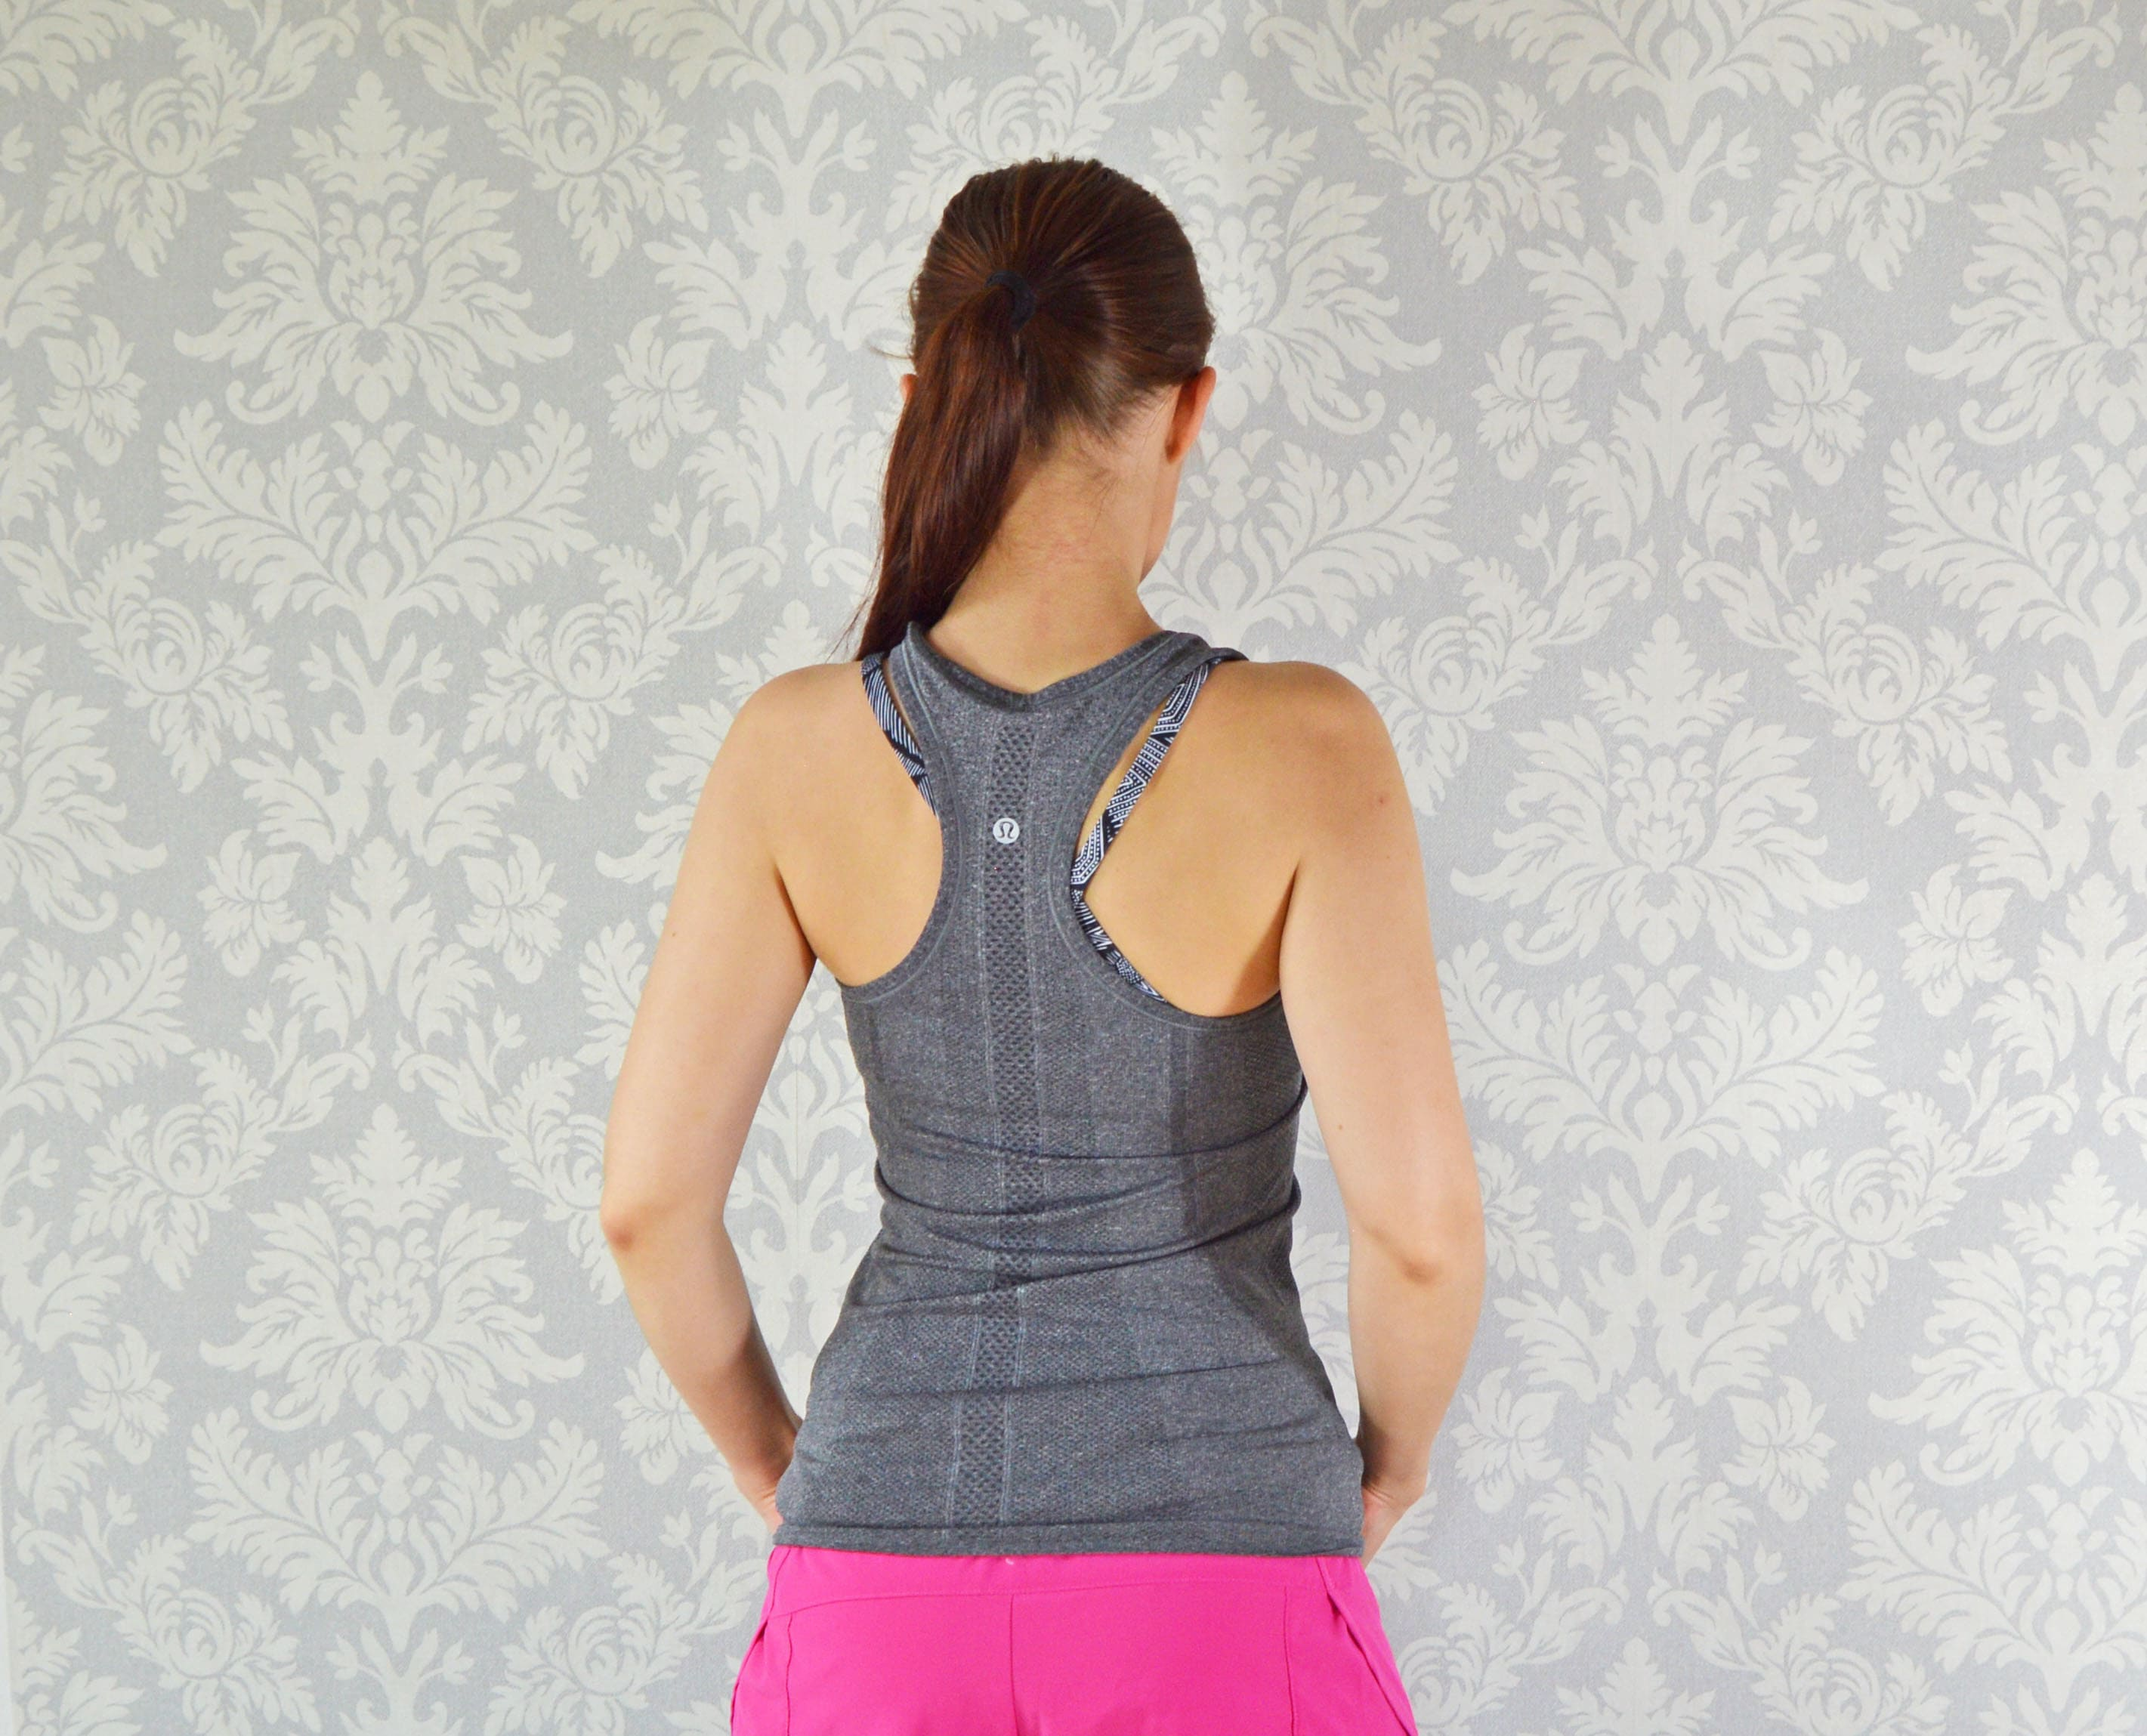 lululemon swiftly racer back